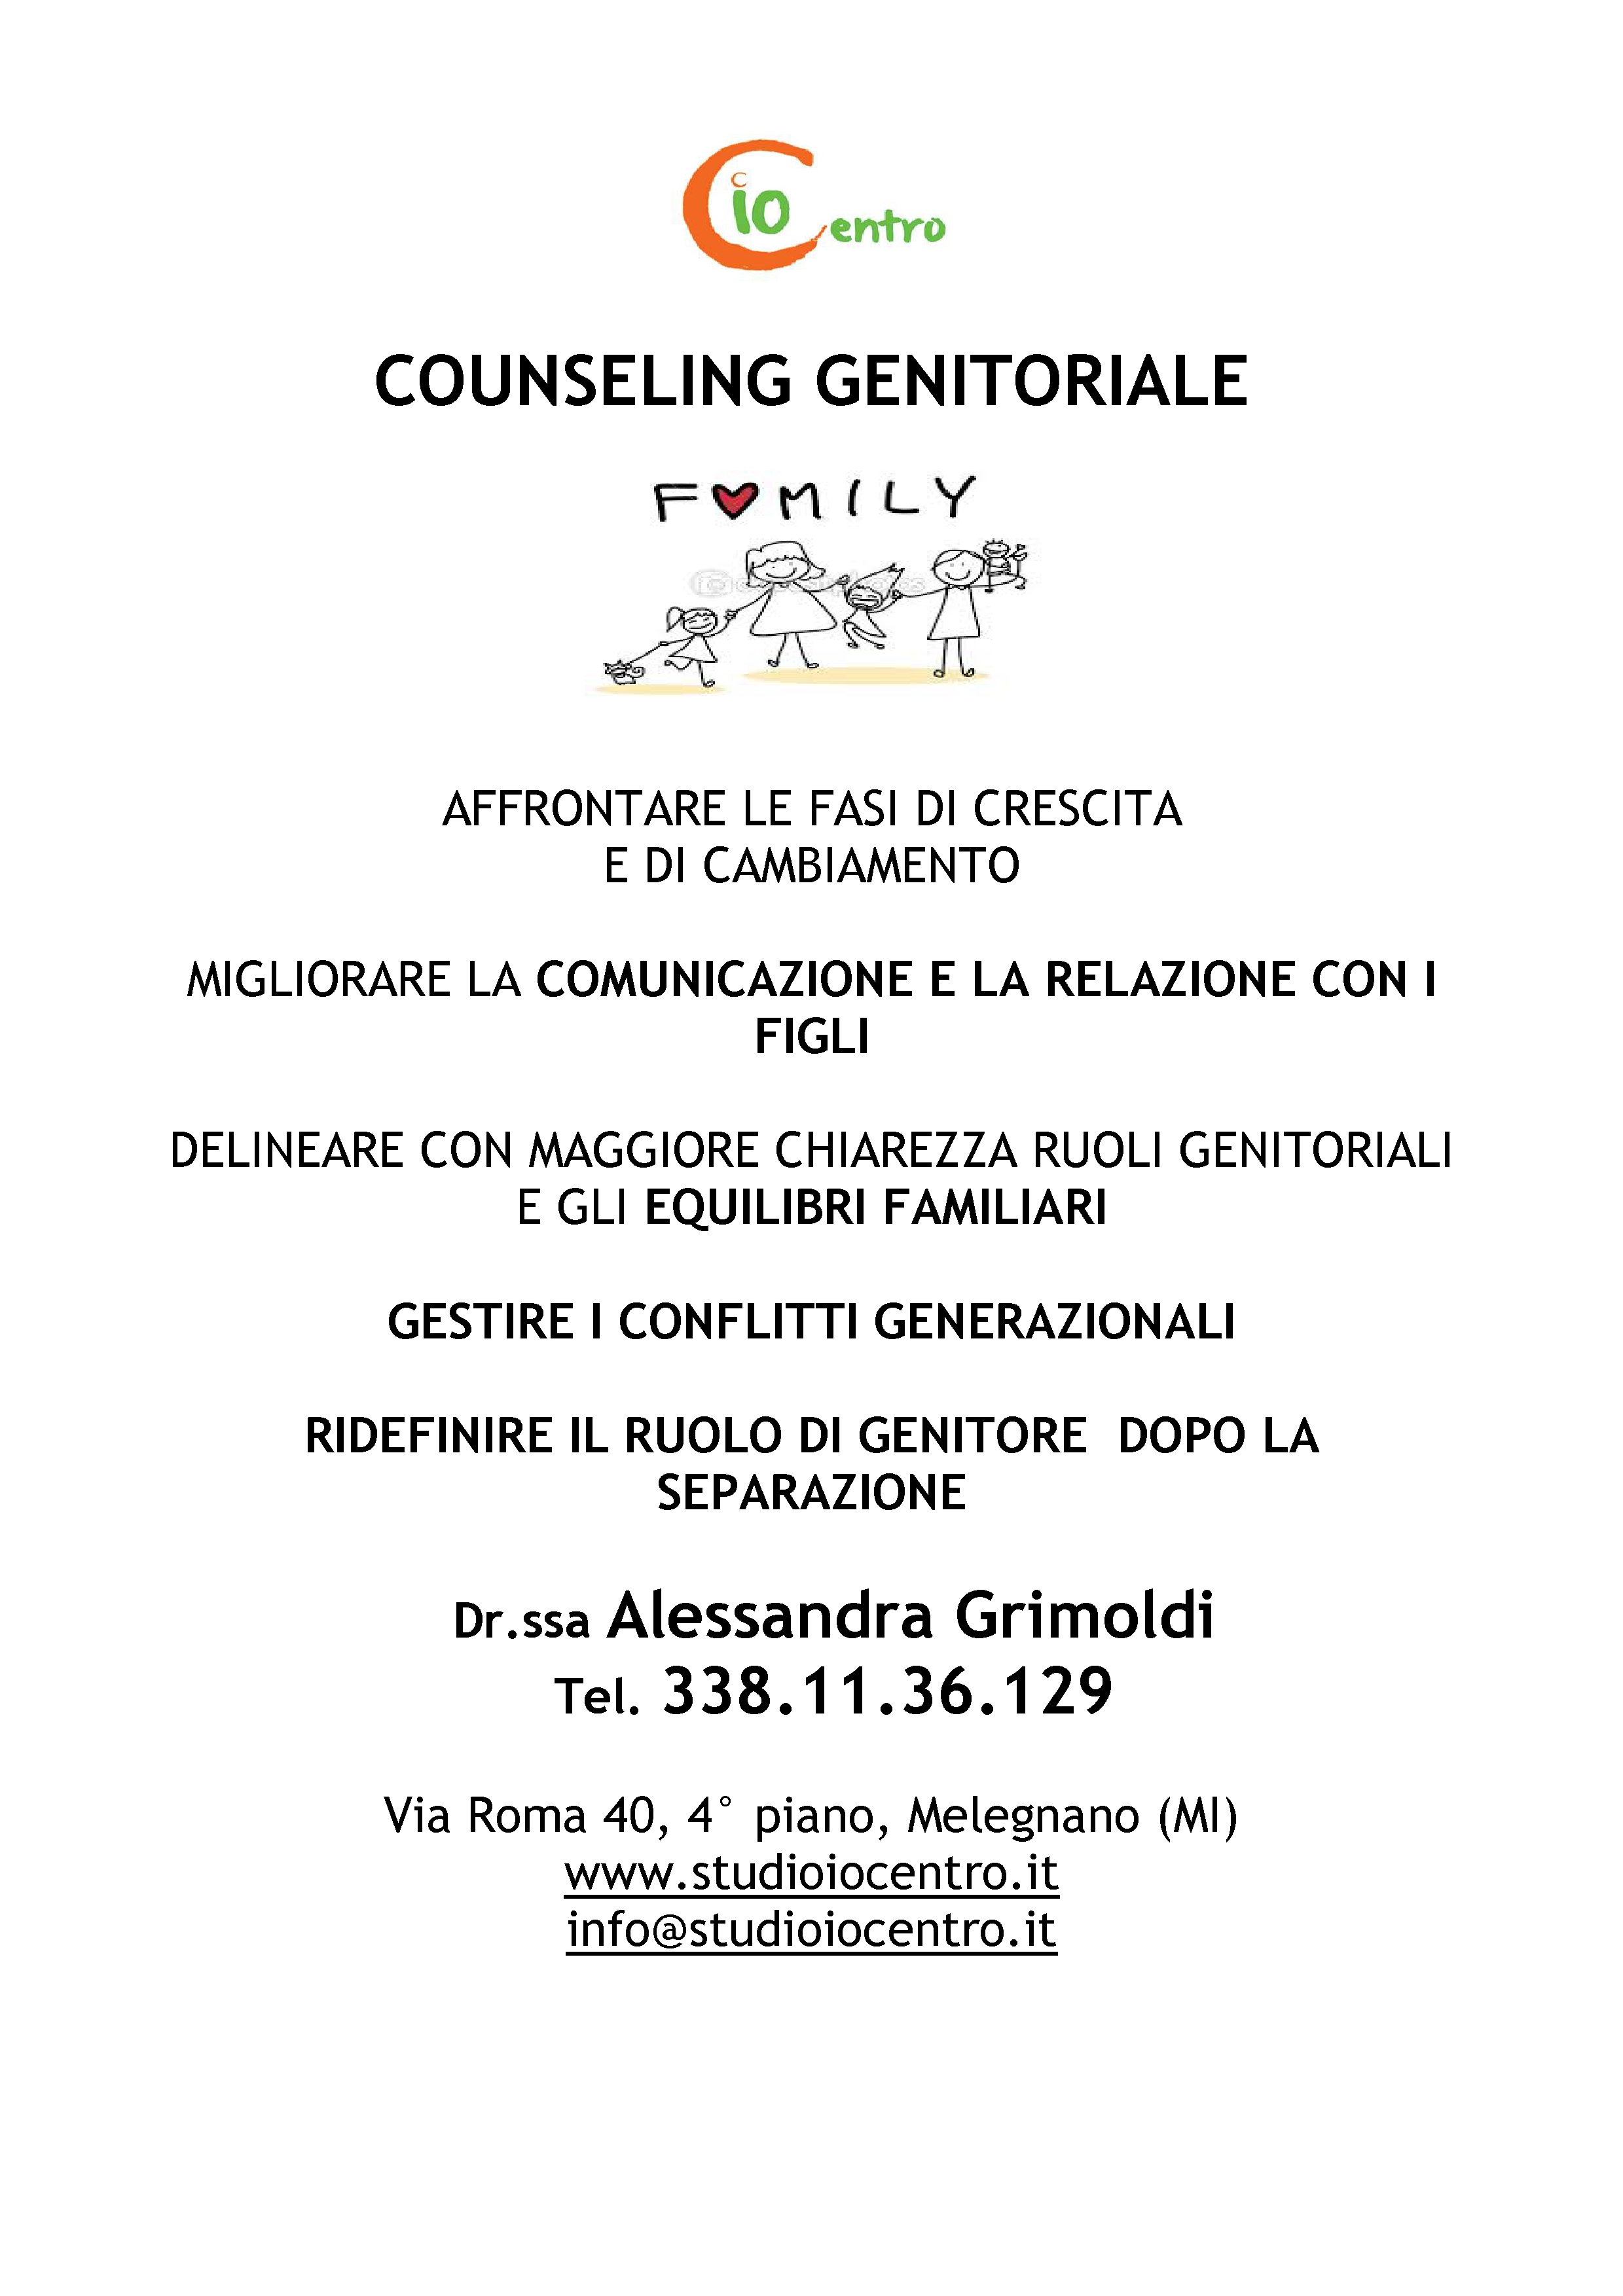 UNICO COUNSELING GENITORIALE